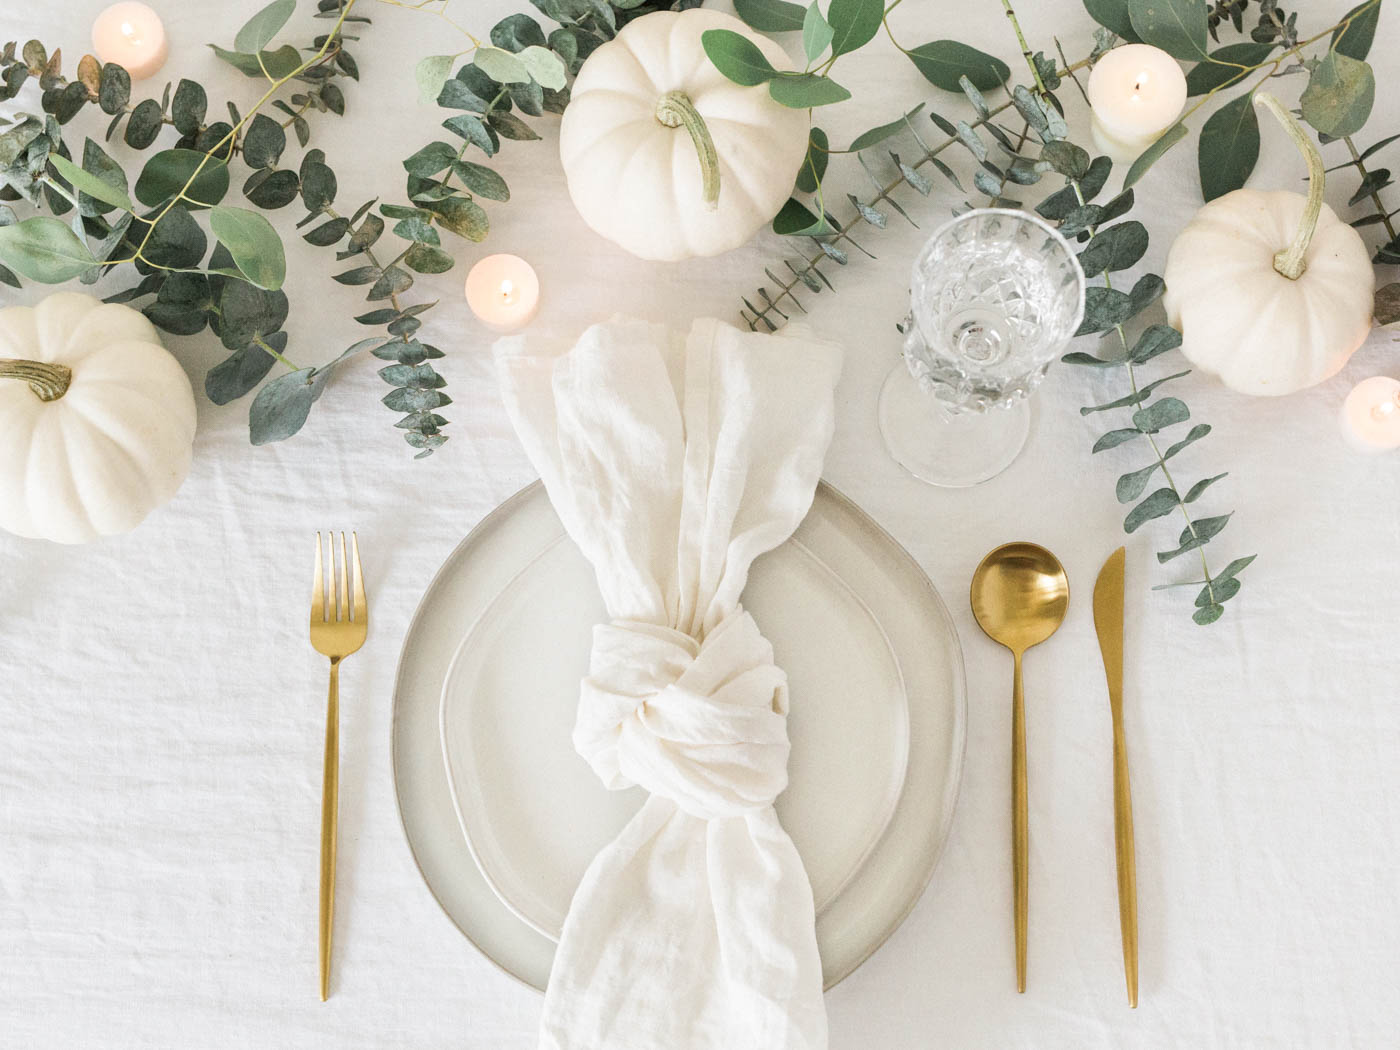 Voyage + Heart - Food Photograpy - Food Styling - Cookbook Photography - Cookbook Stylist - Recipe photographers - Tablescape - Holiday Table Designs - How To Design A Tablescape - Table Styling - Ceramic Artists 1.jpg